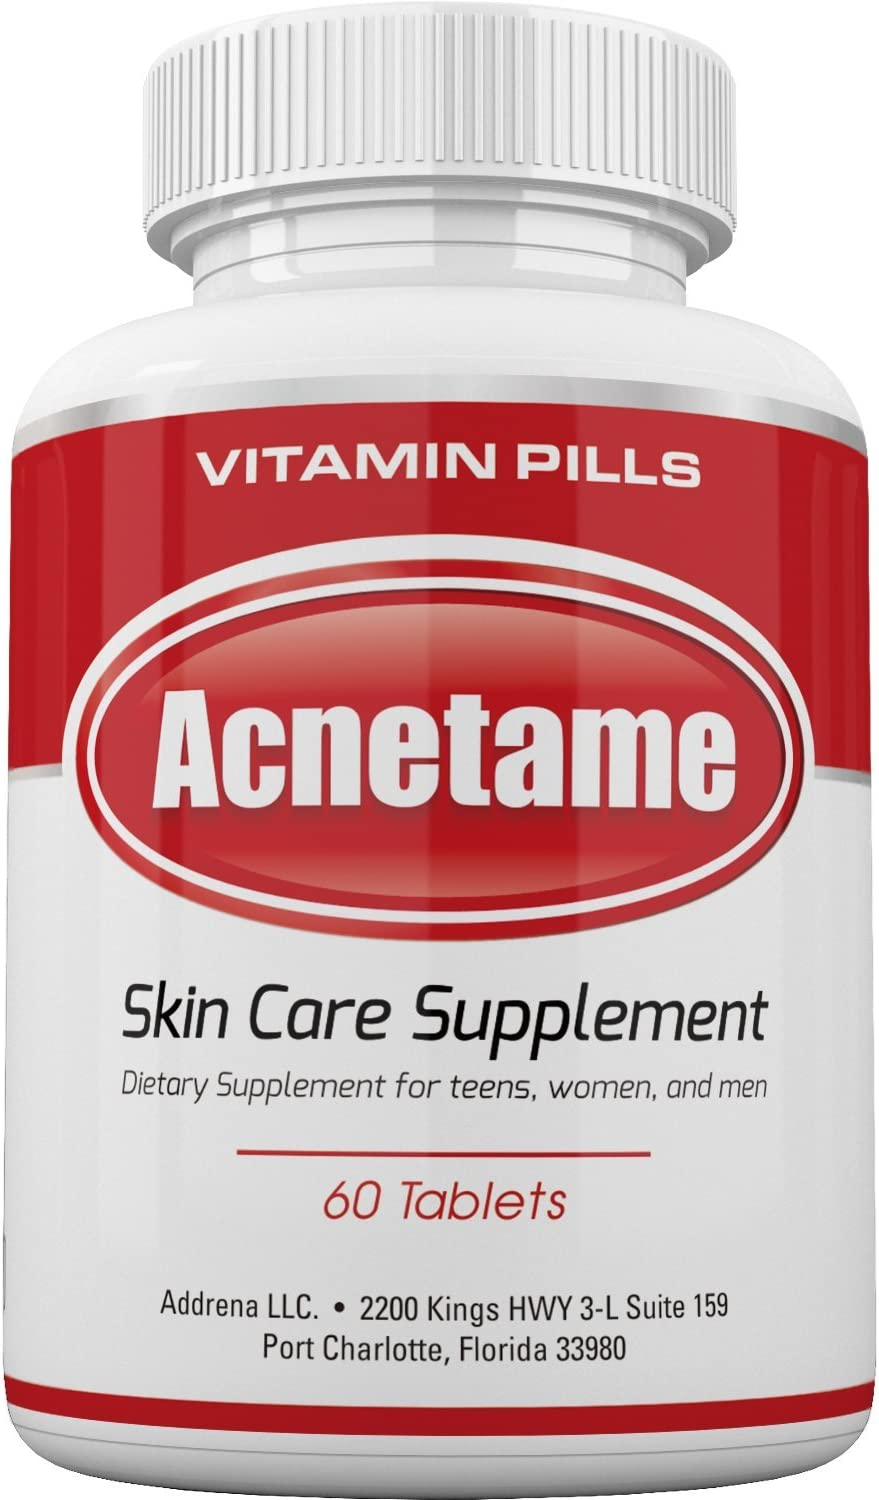 Acnetame Vitamin Supplements For Acne Treatment 60 Natural Pills